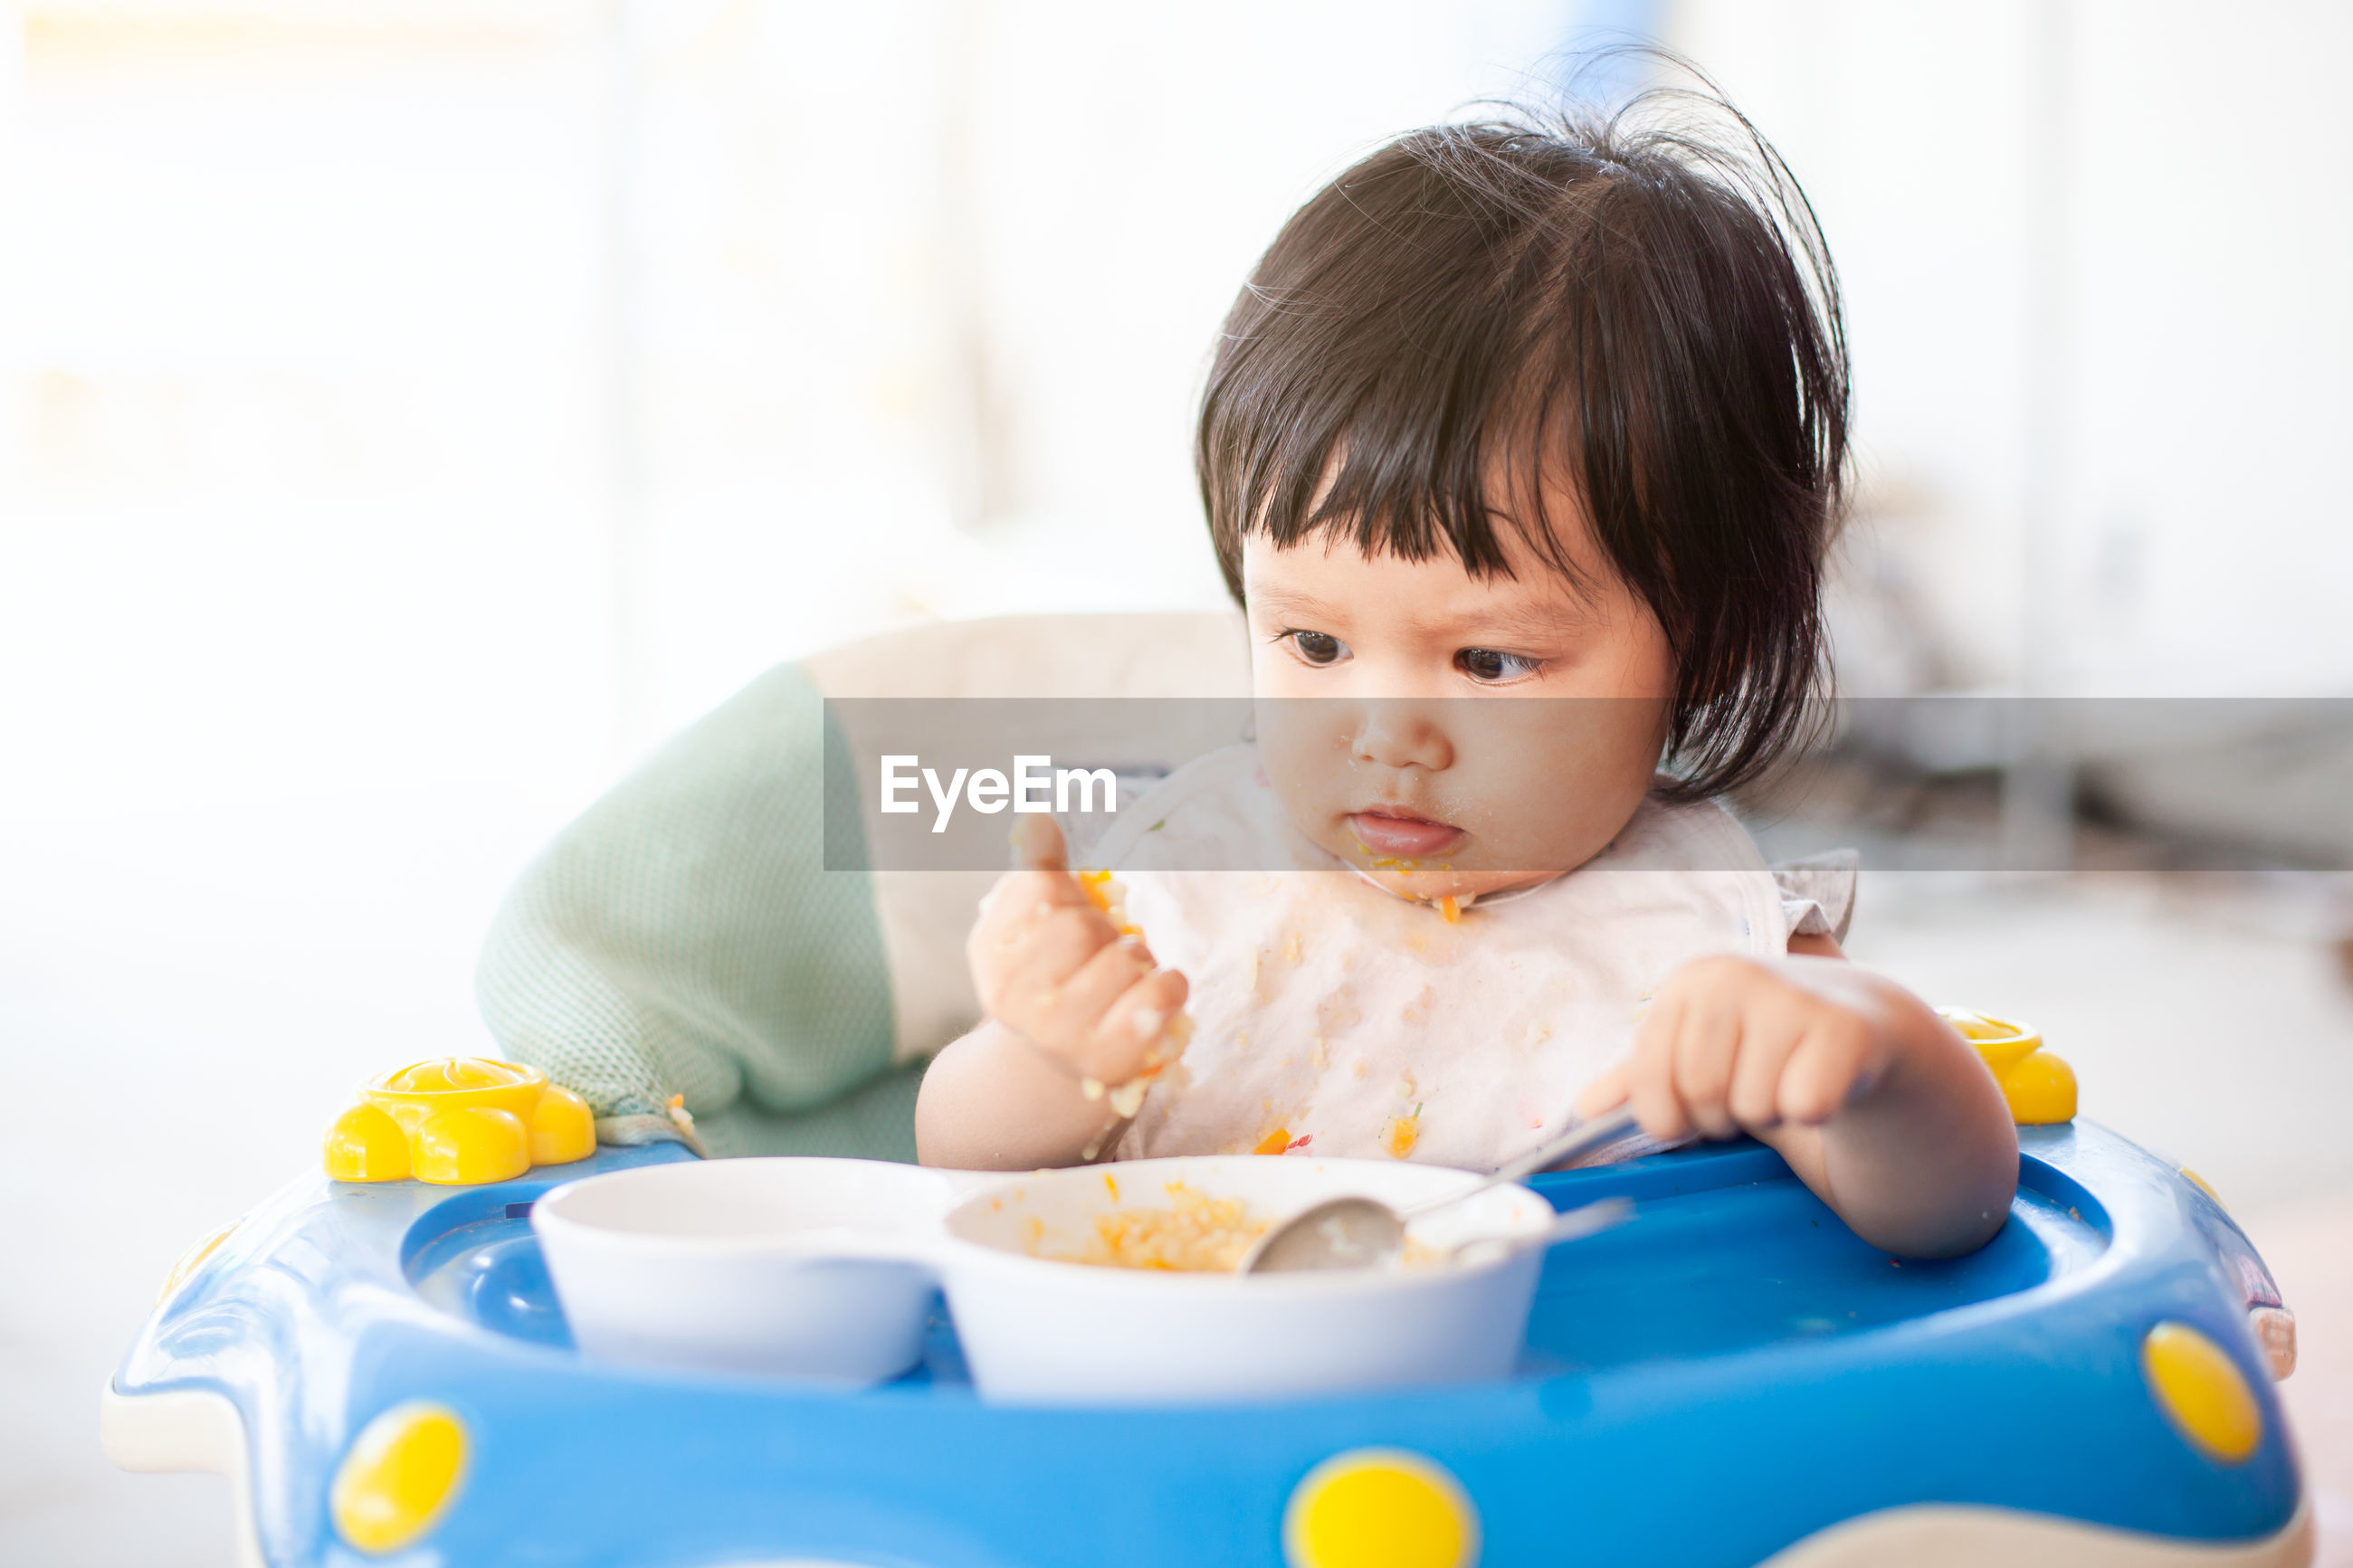 Close-up of cute baby girl eating food